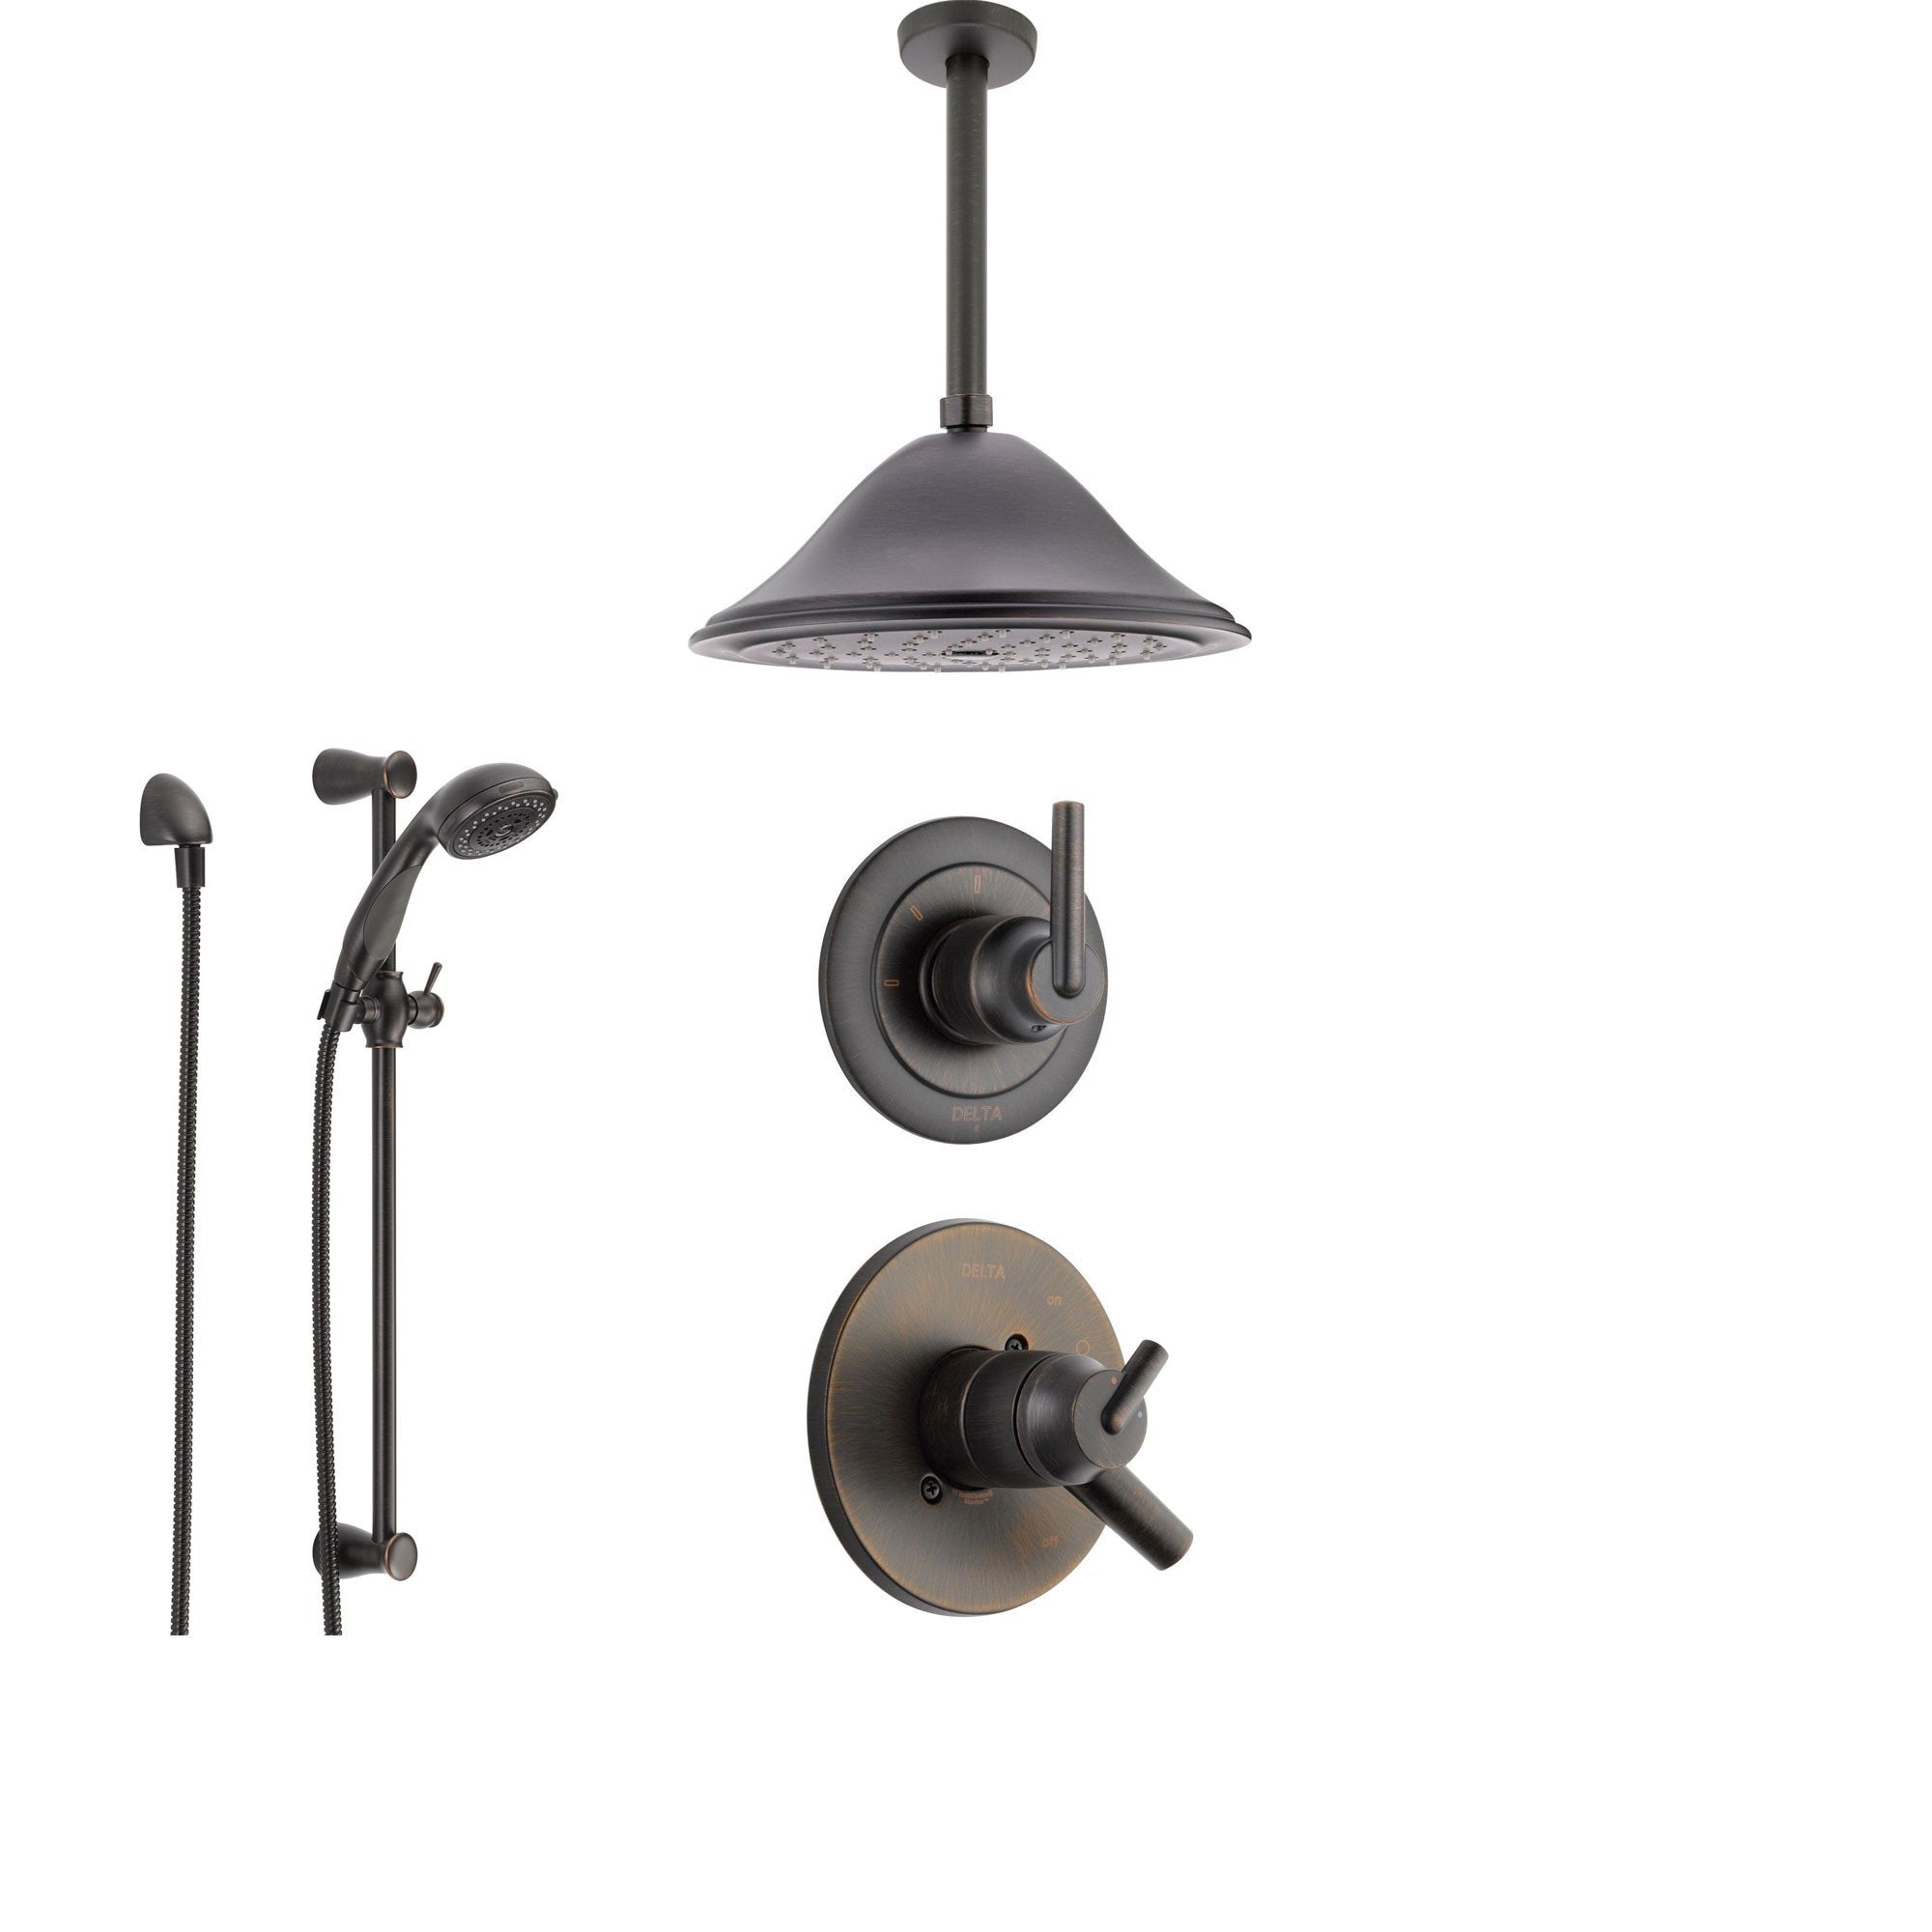 Delta Trinsic Venetian Bronze Shower System with Dual Control Shower Handle, 3-setting Diverter, Large Ceiling Mount Rain Showerhead, and Handheld Shower SS175982RB